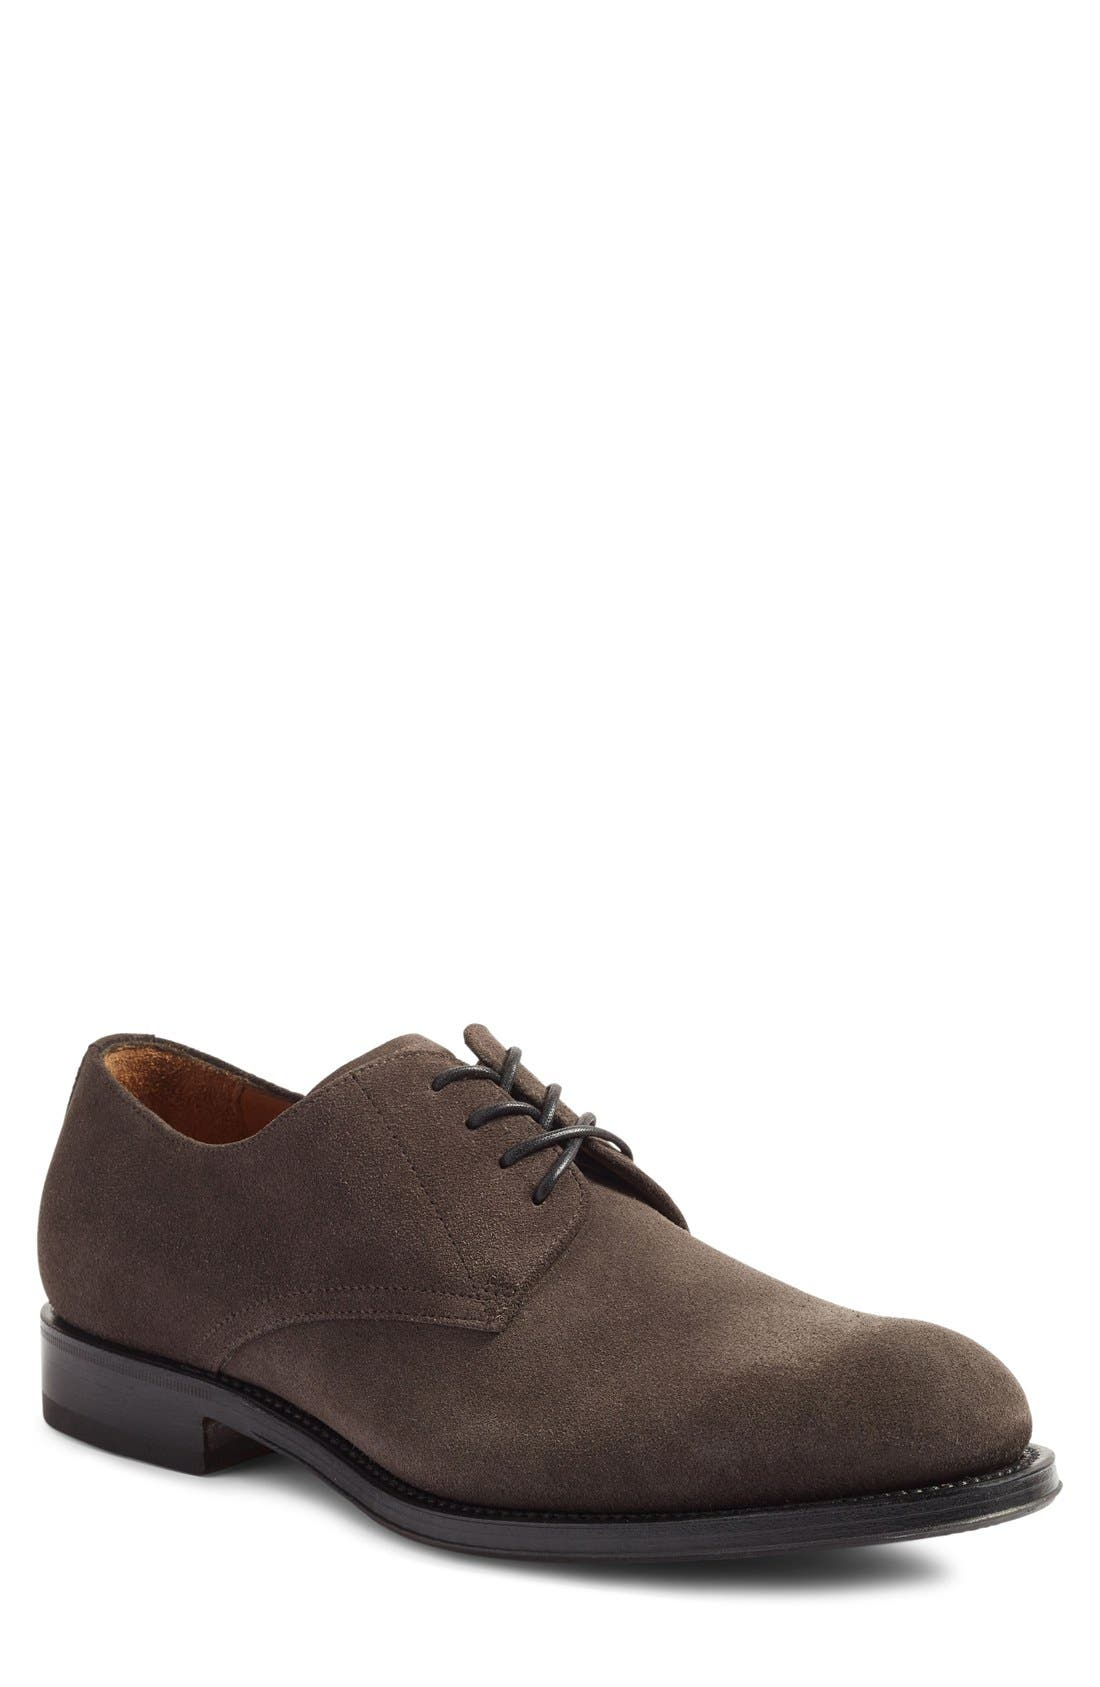 'Vance' Plain Toe Derby,                         Main,                         color, Charcoal Suede